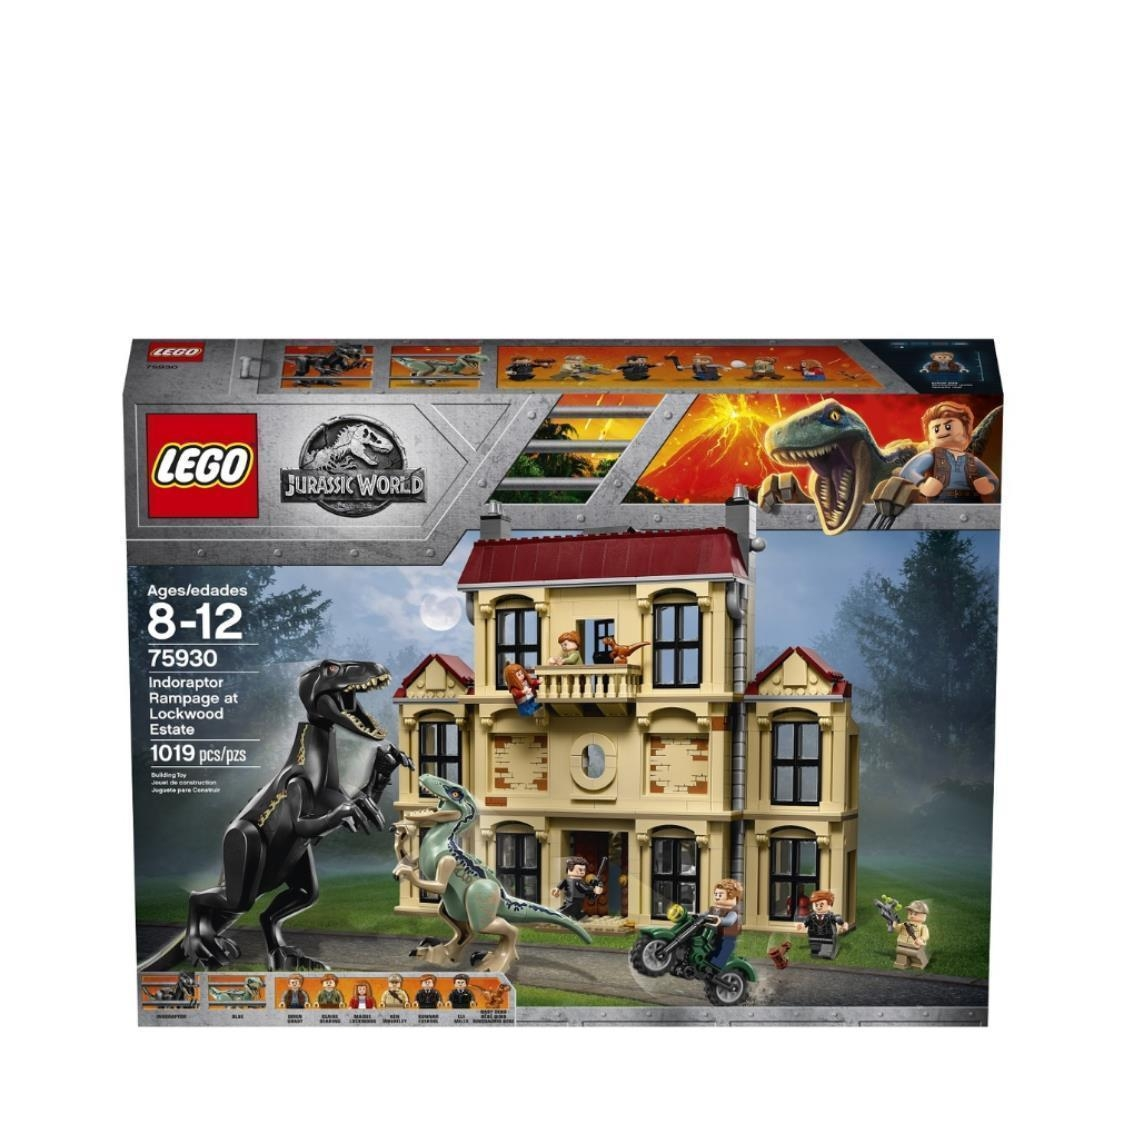 Indoraptor Rampage at Lockwood Estate 75930